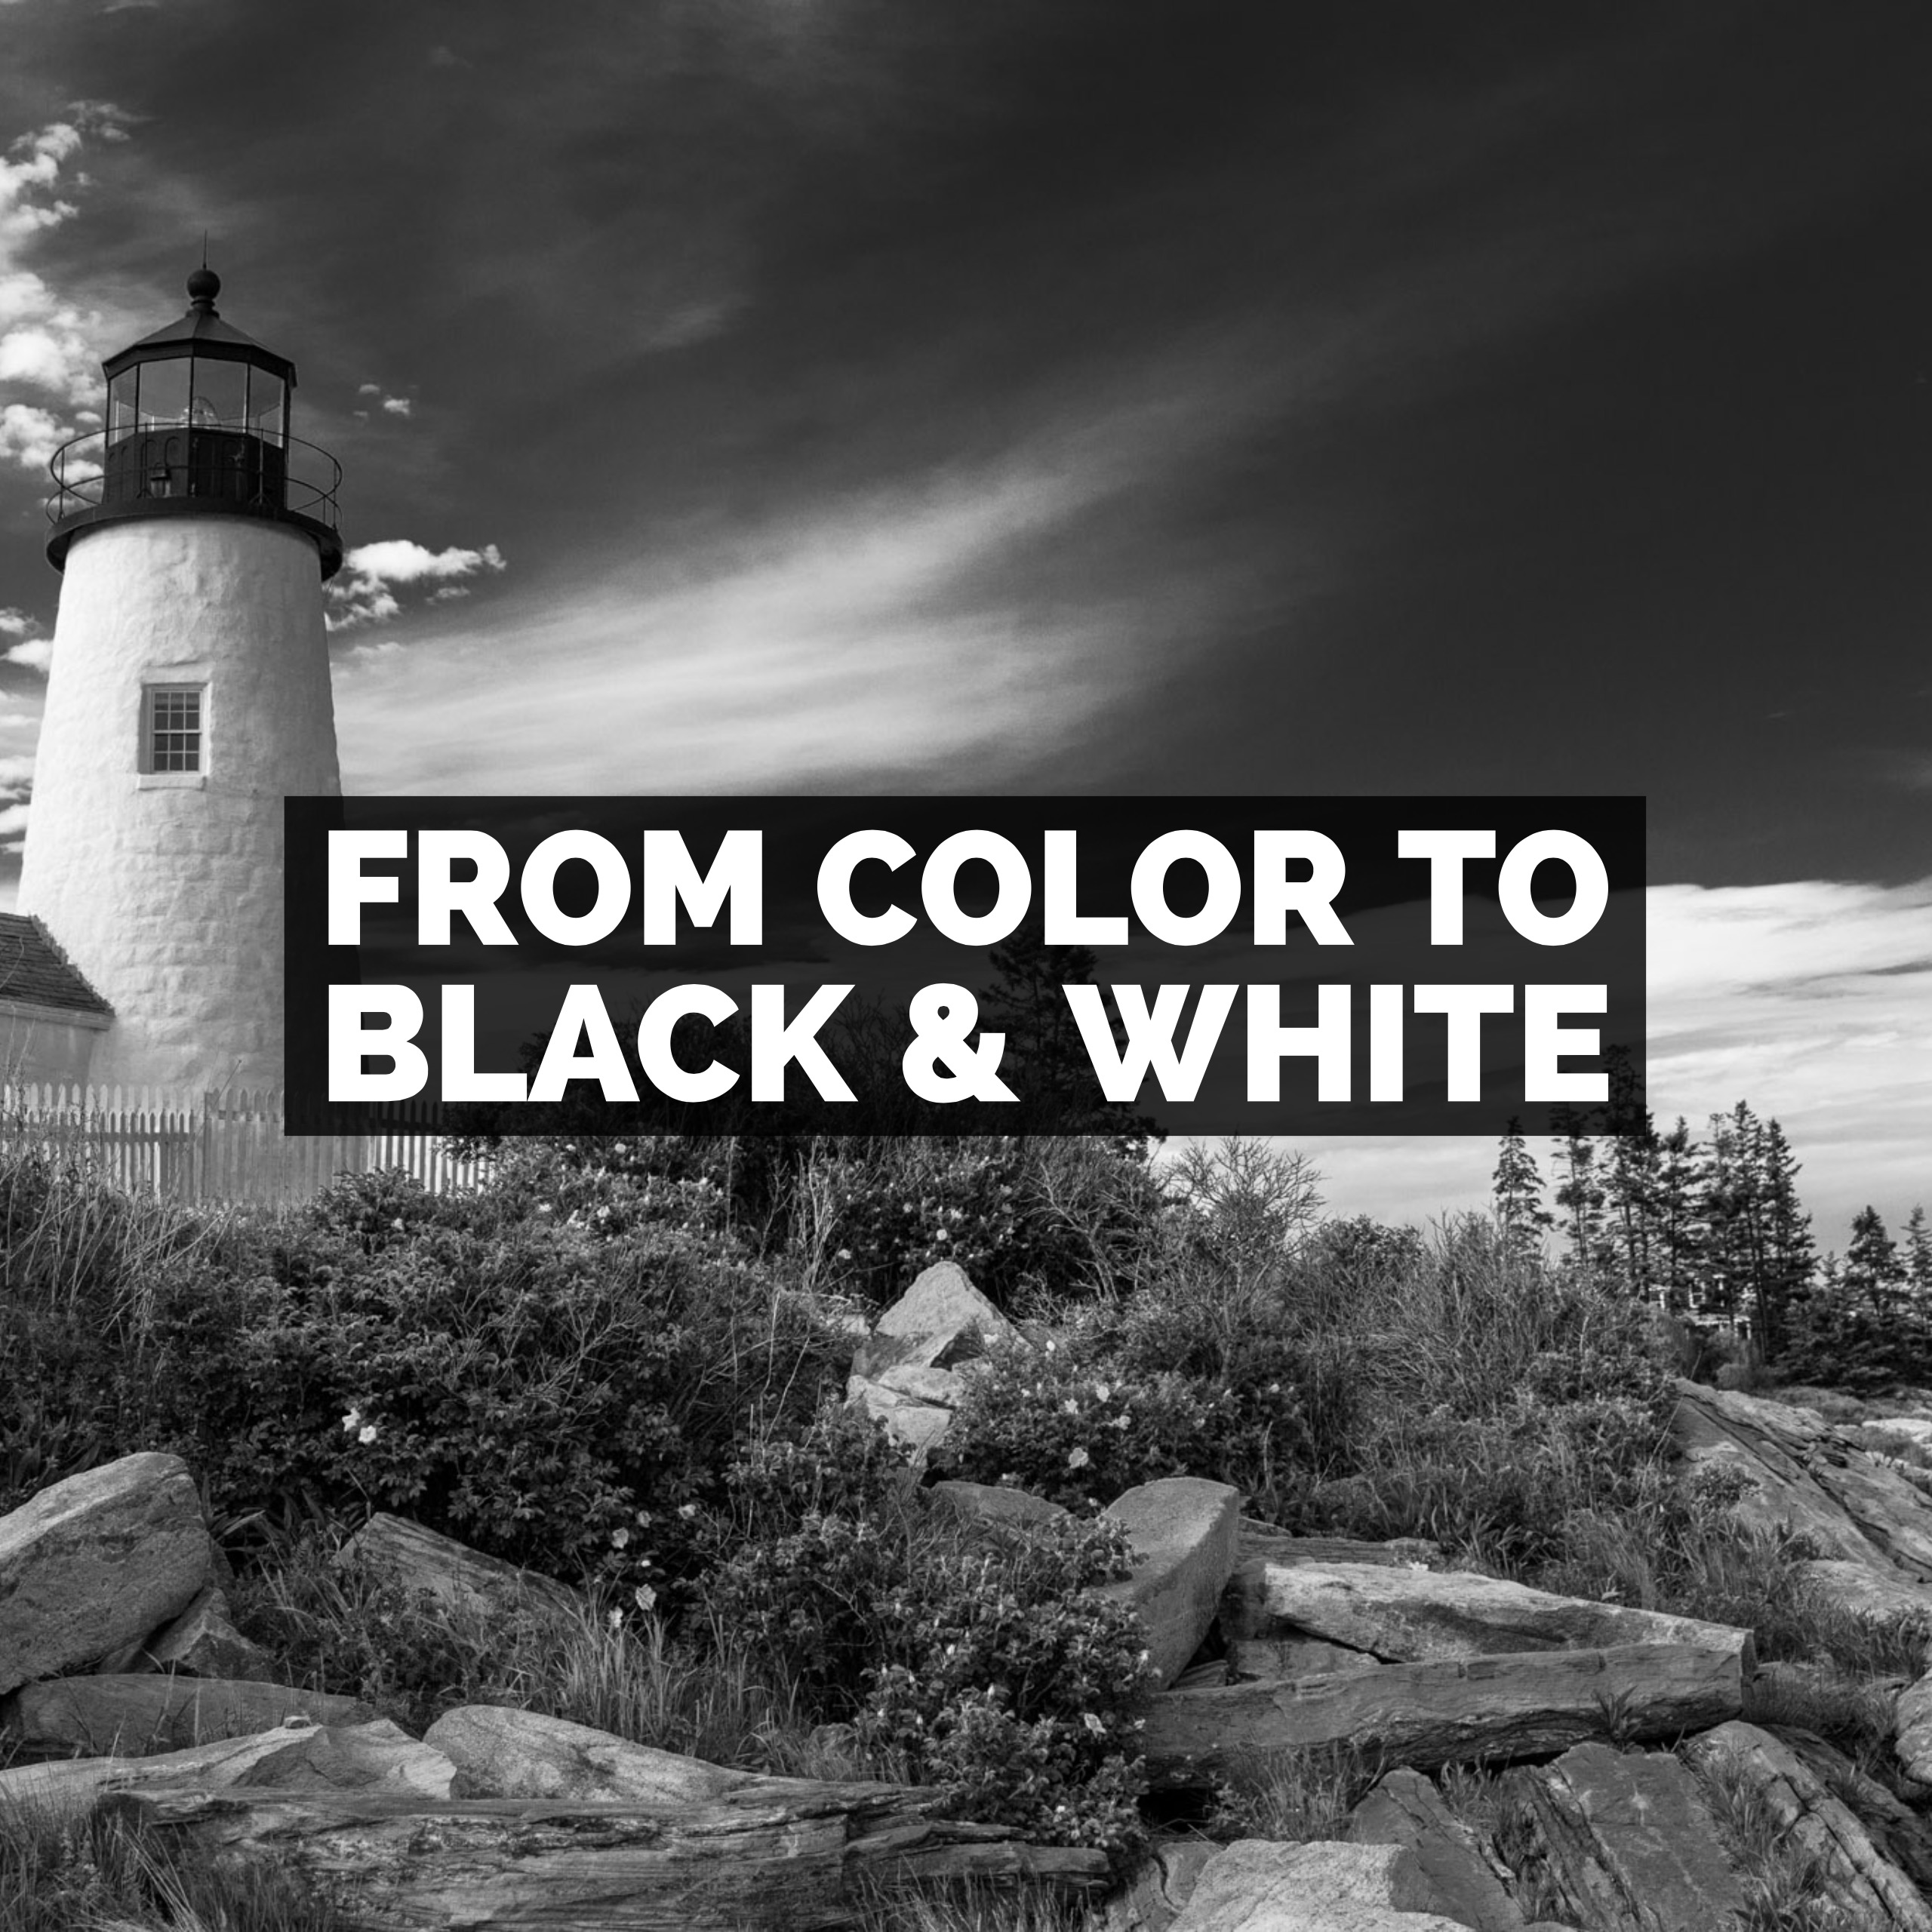 Turn A Color Photo Into Black & White With Adobe Lightroom